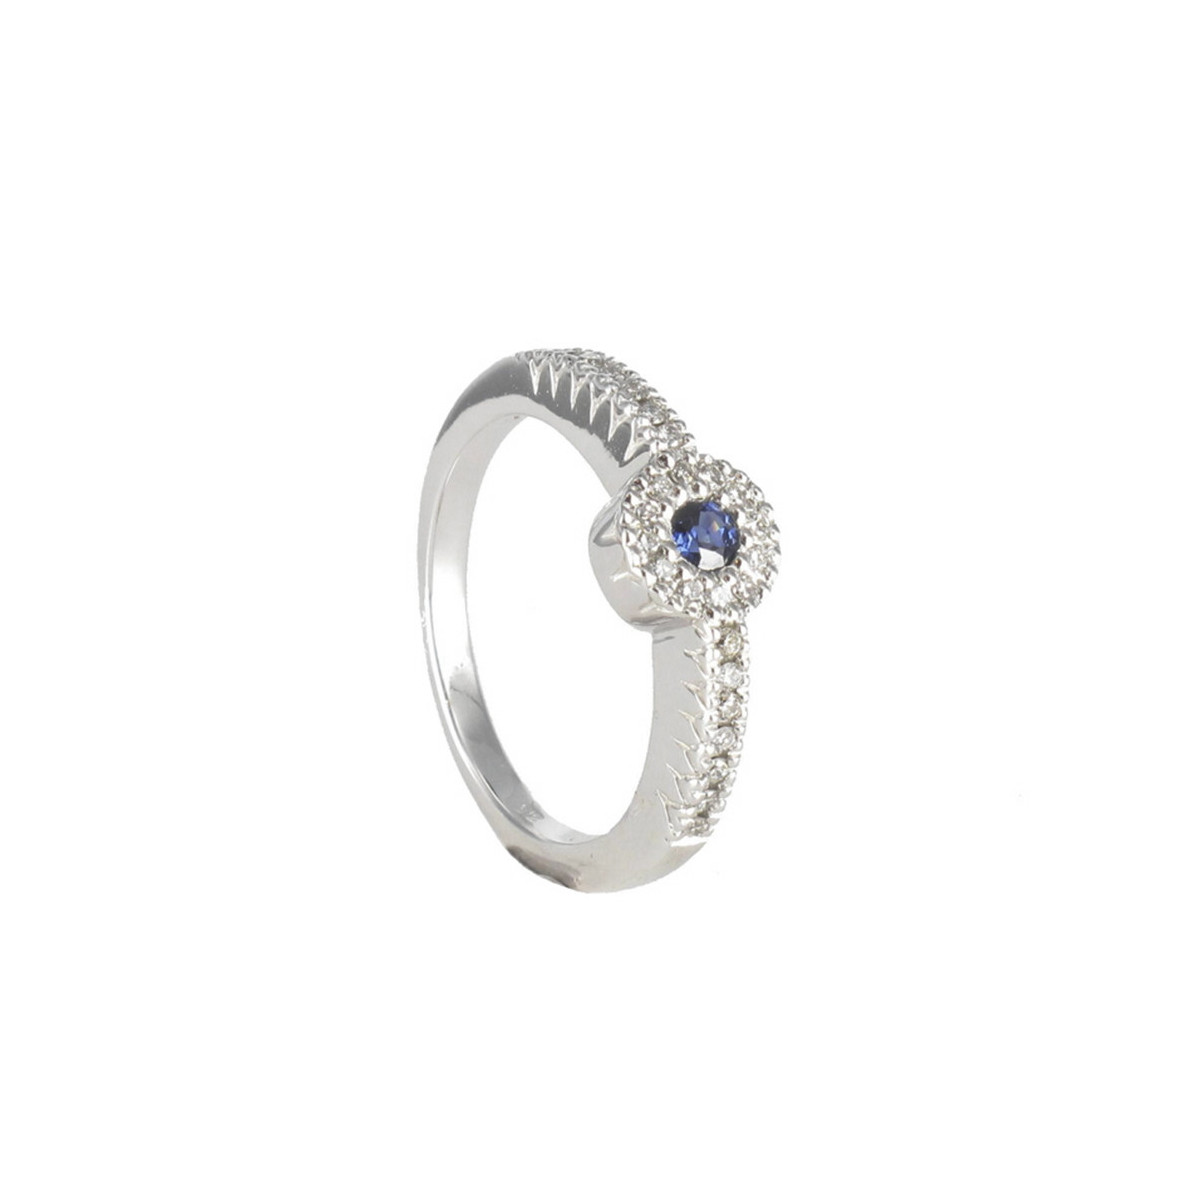 FINE RING WITH DIAMONDS AND BLUE STONE